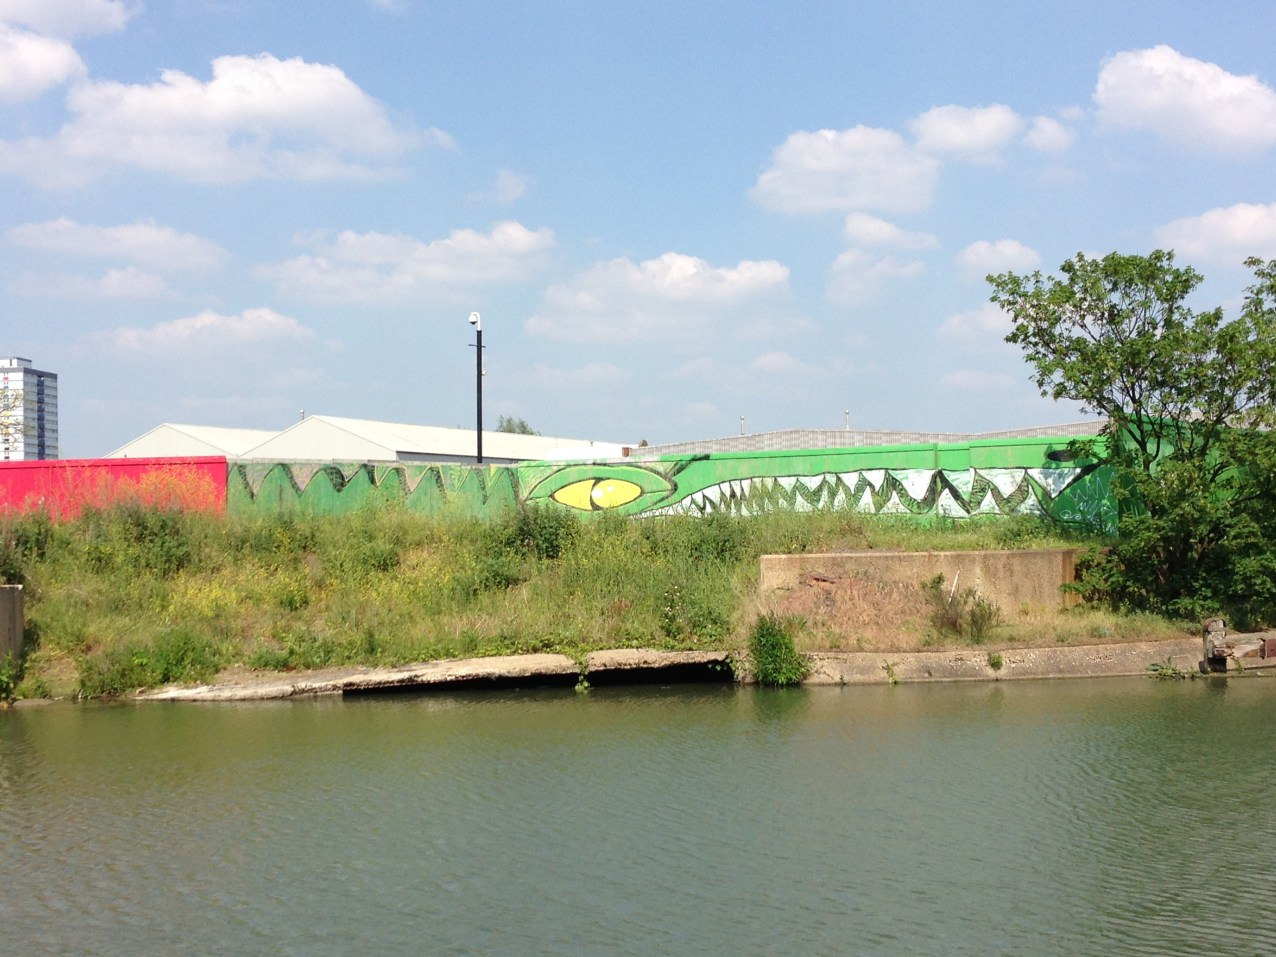 Graffiti Art on a stroll down the canal by Hackney Wick.